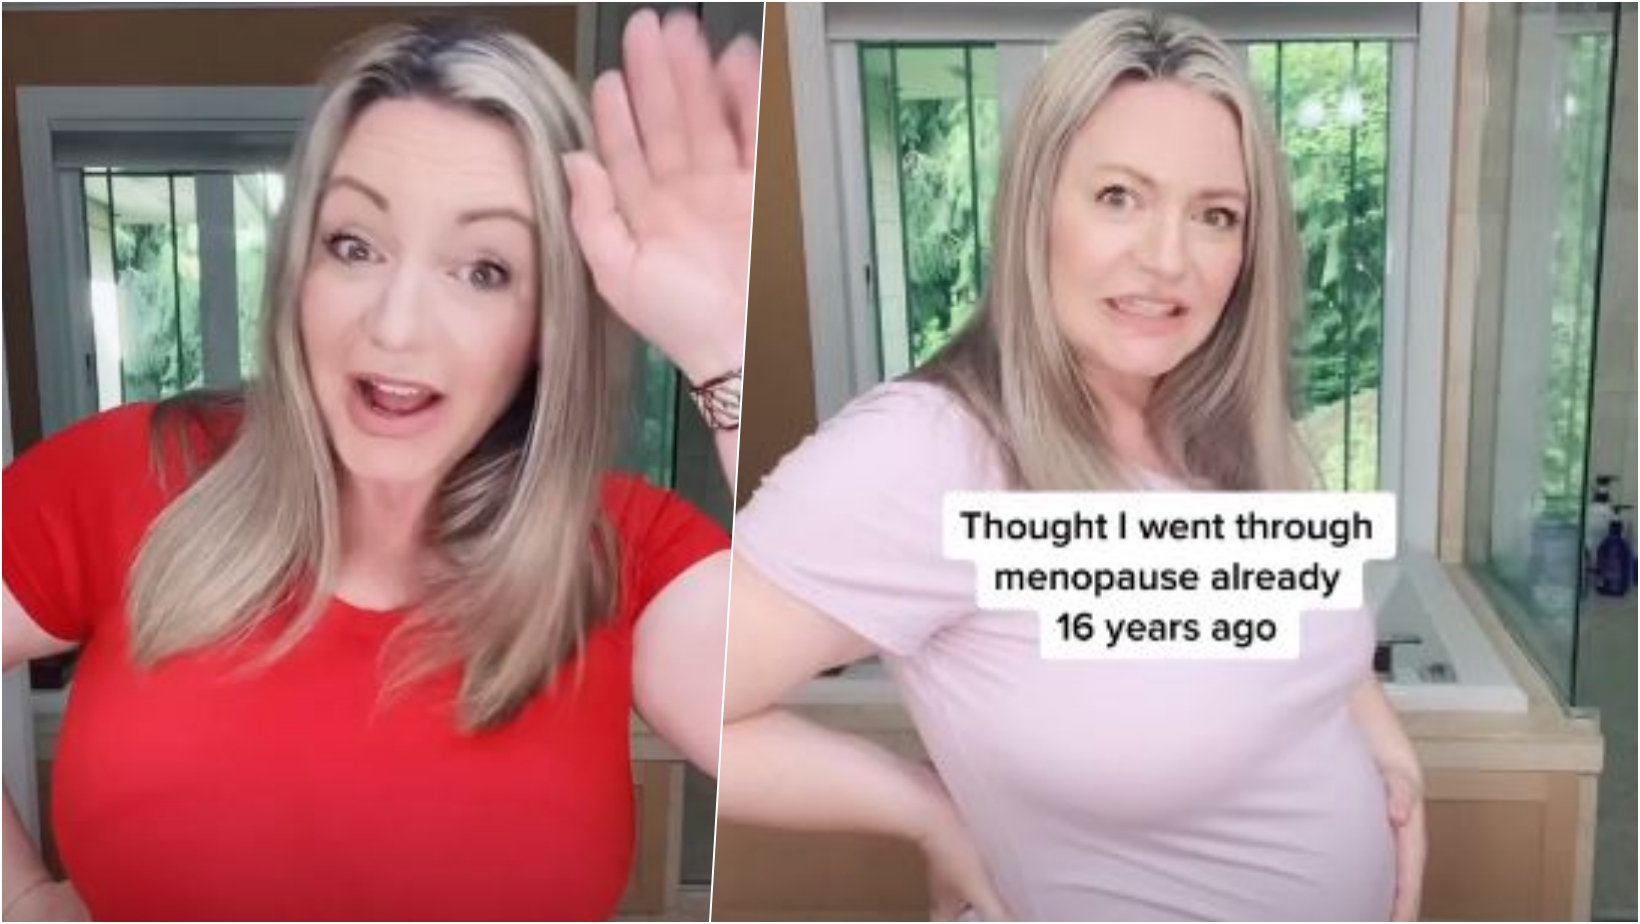 6 facebook cover 22.jpg - 62-Year-Old Woman Who Hasn't Had A Period For 16 Years Announced That She's PREGNANT